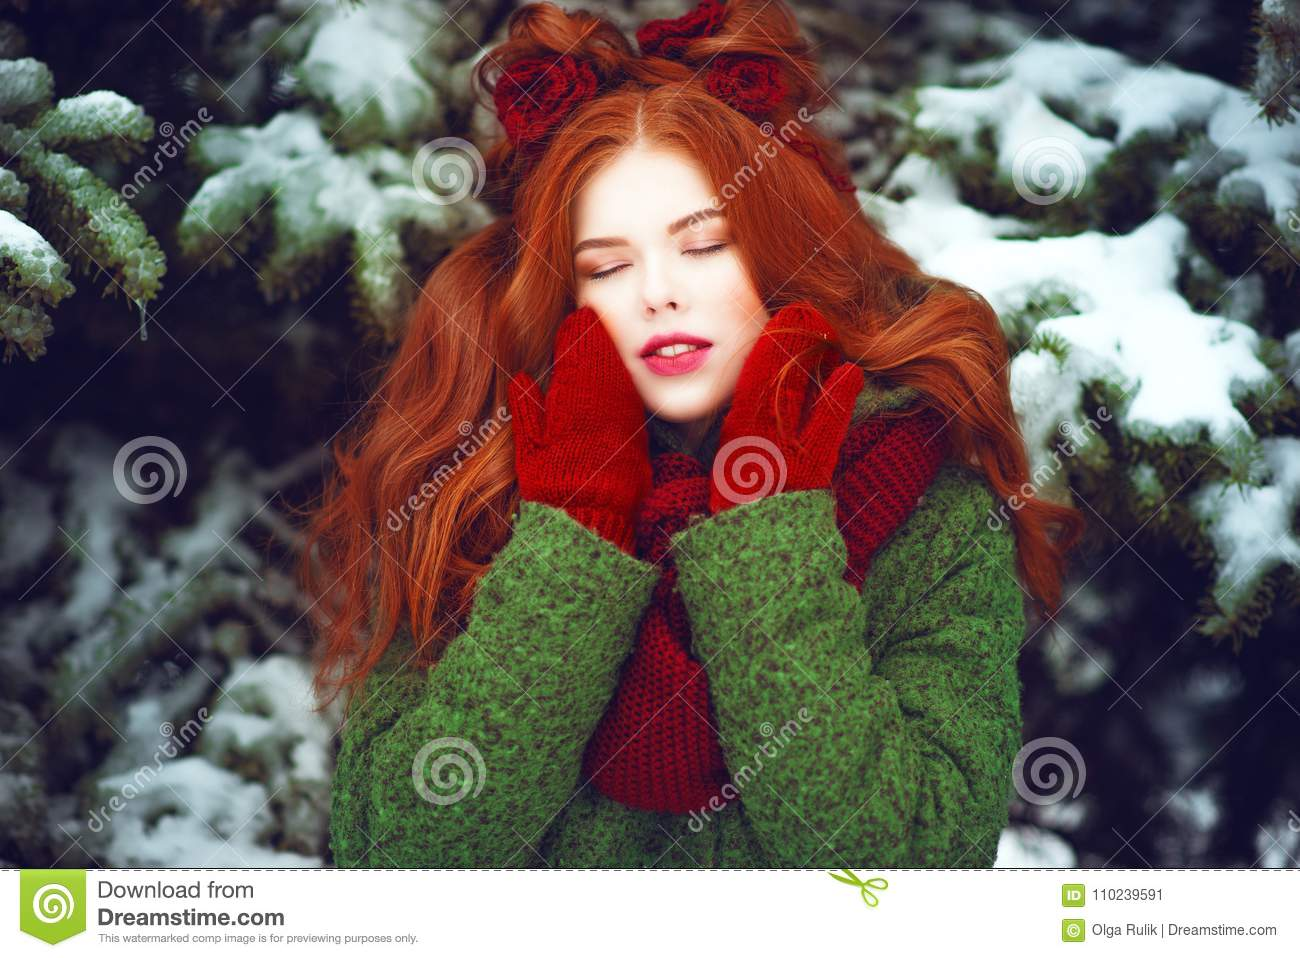 Beautiful red haired girl with creative hairstyle posing with closed eyes in front of snow covered firtrees